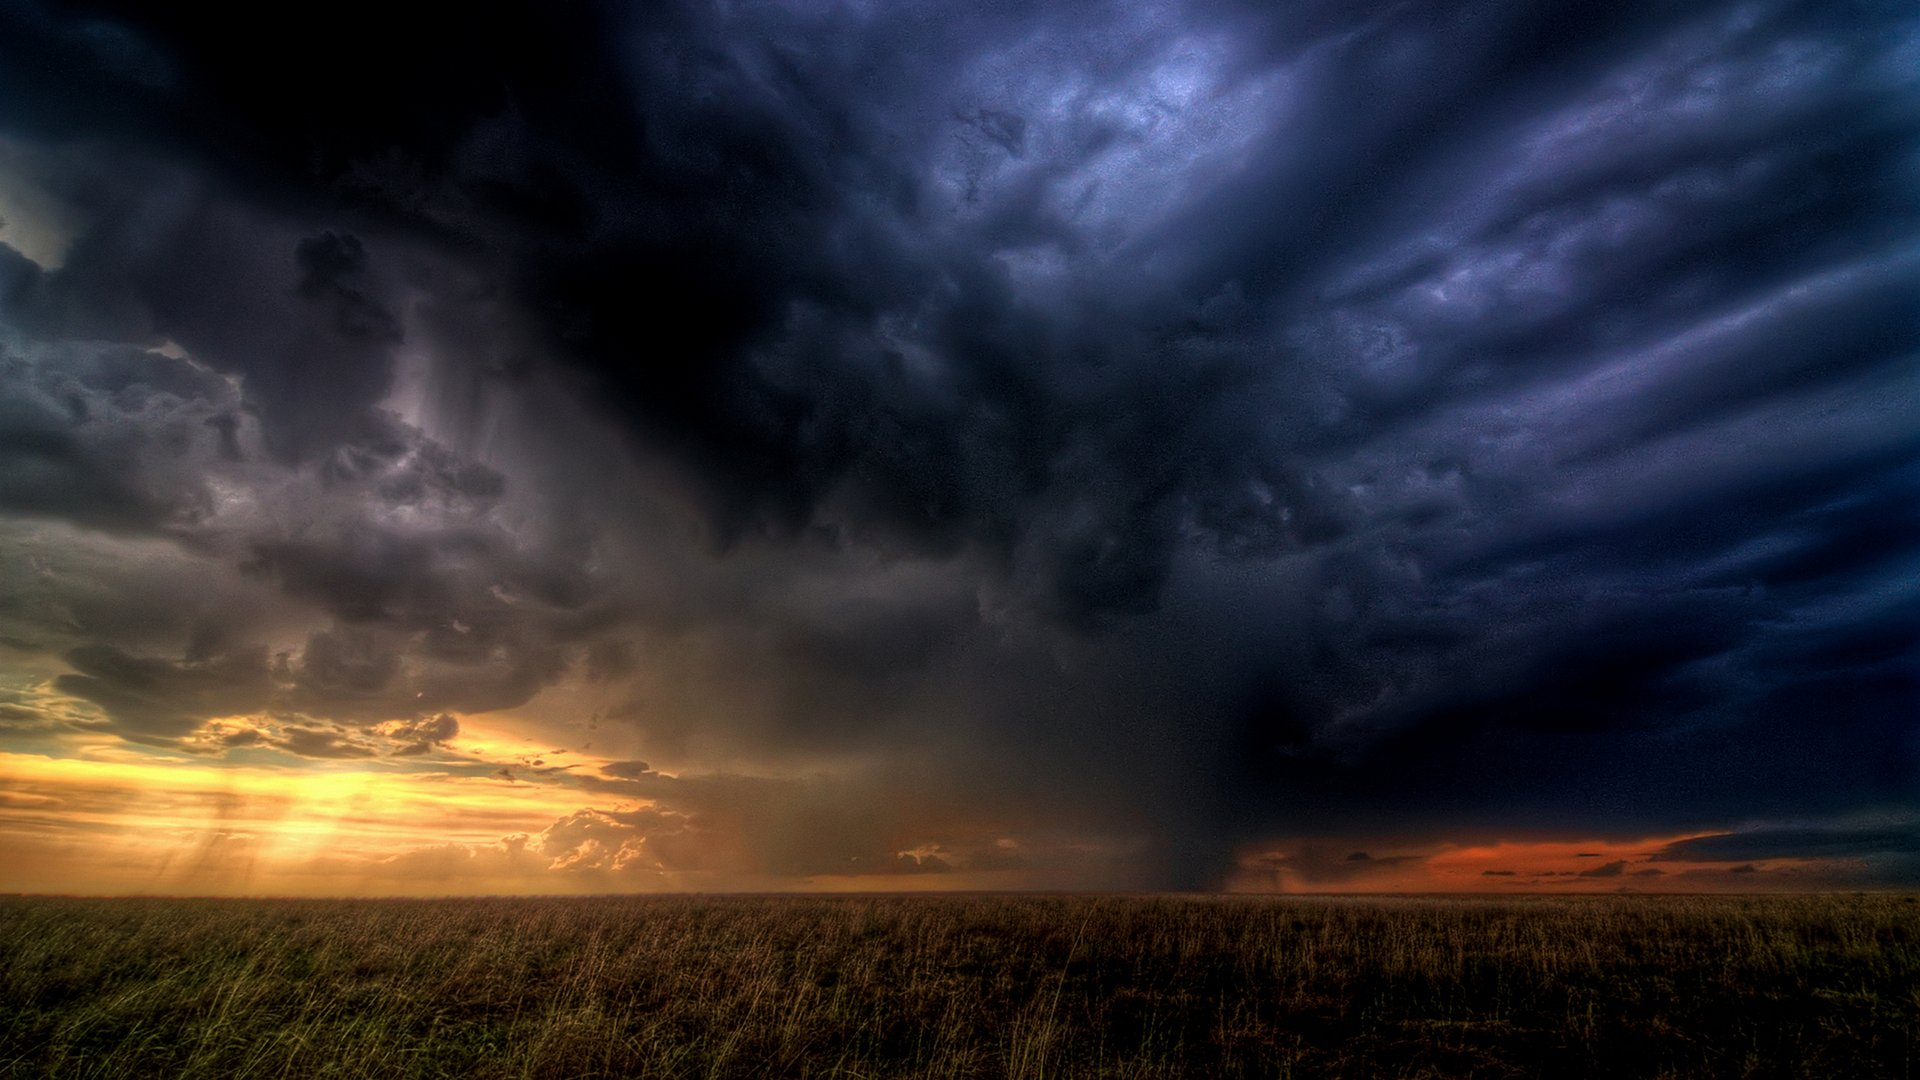 Amazing Storm Clouds Wallpaper